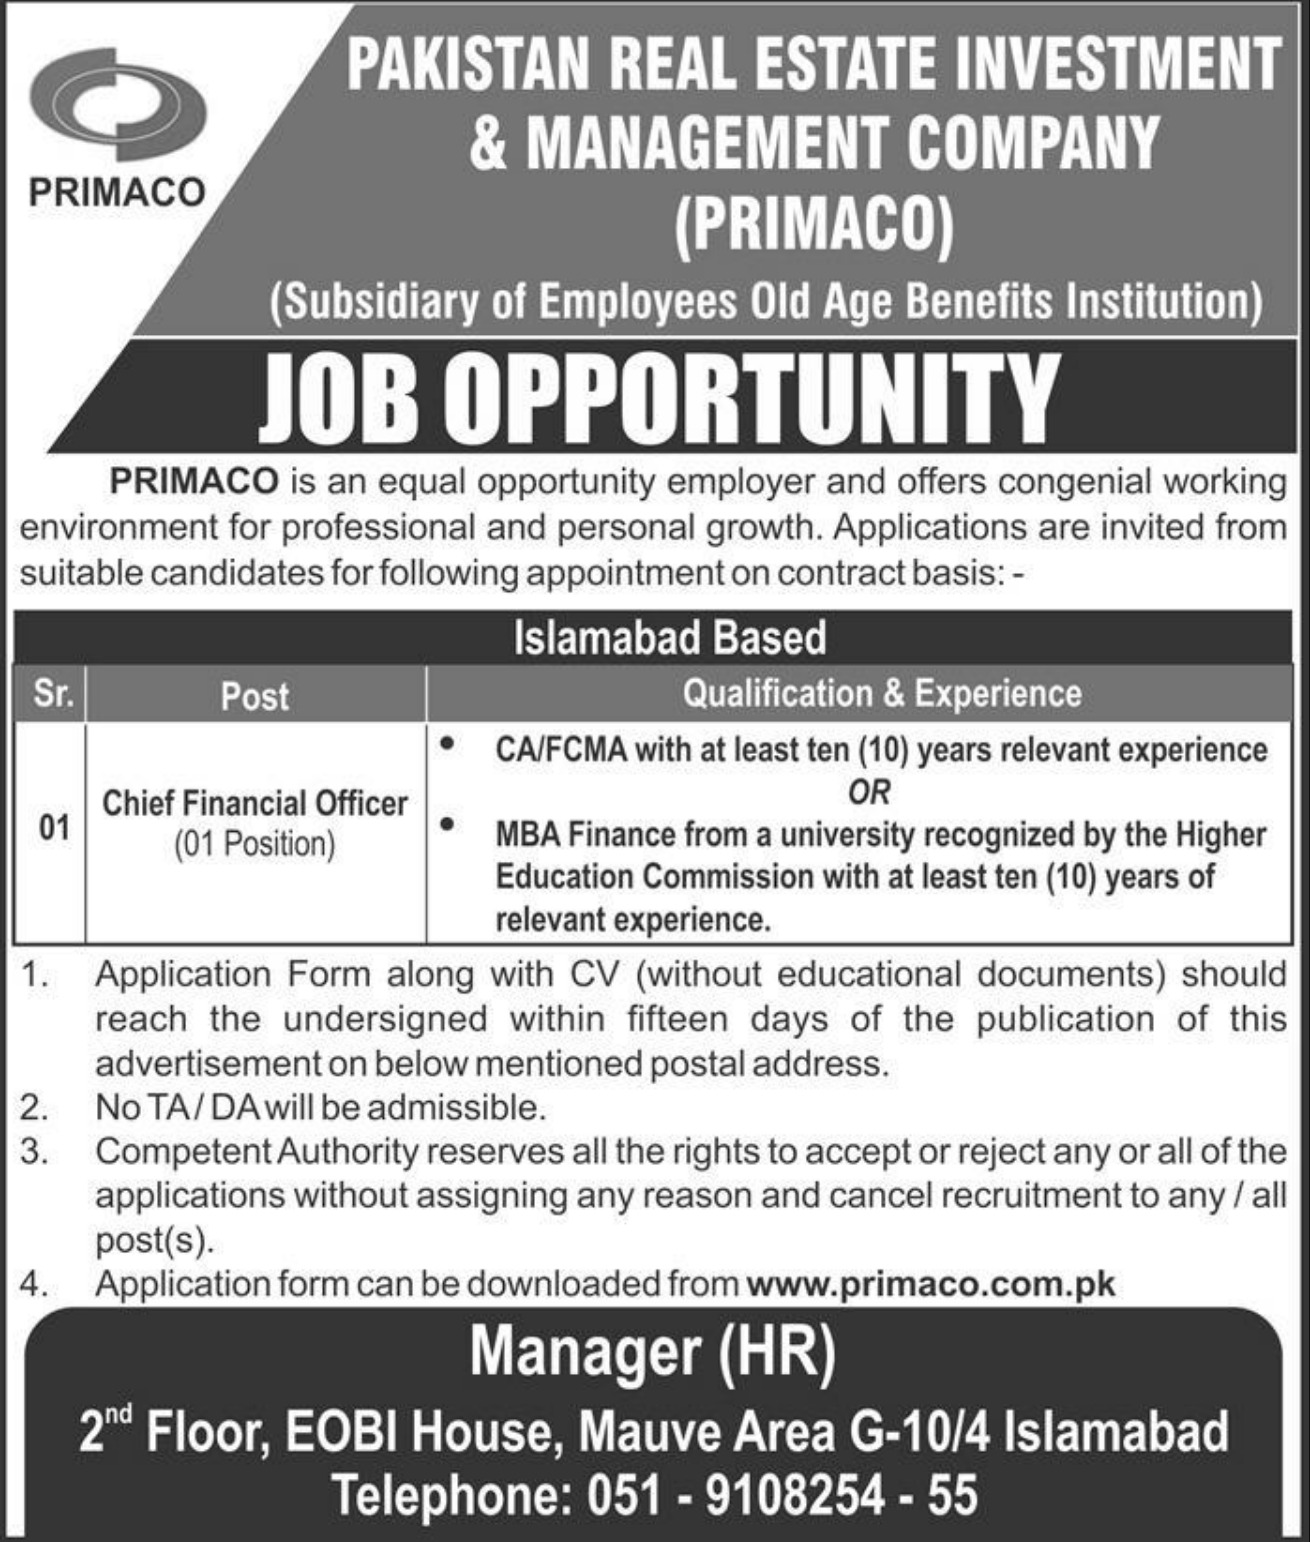 PRIMACO Jobs 2019 Pakistan Real Estate Investment & Management Company